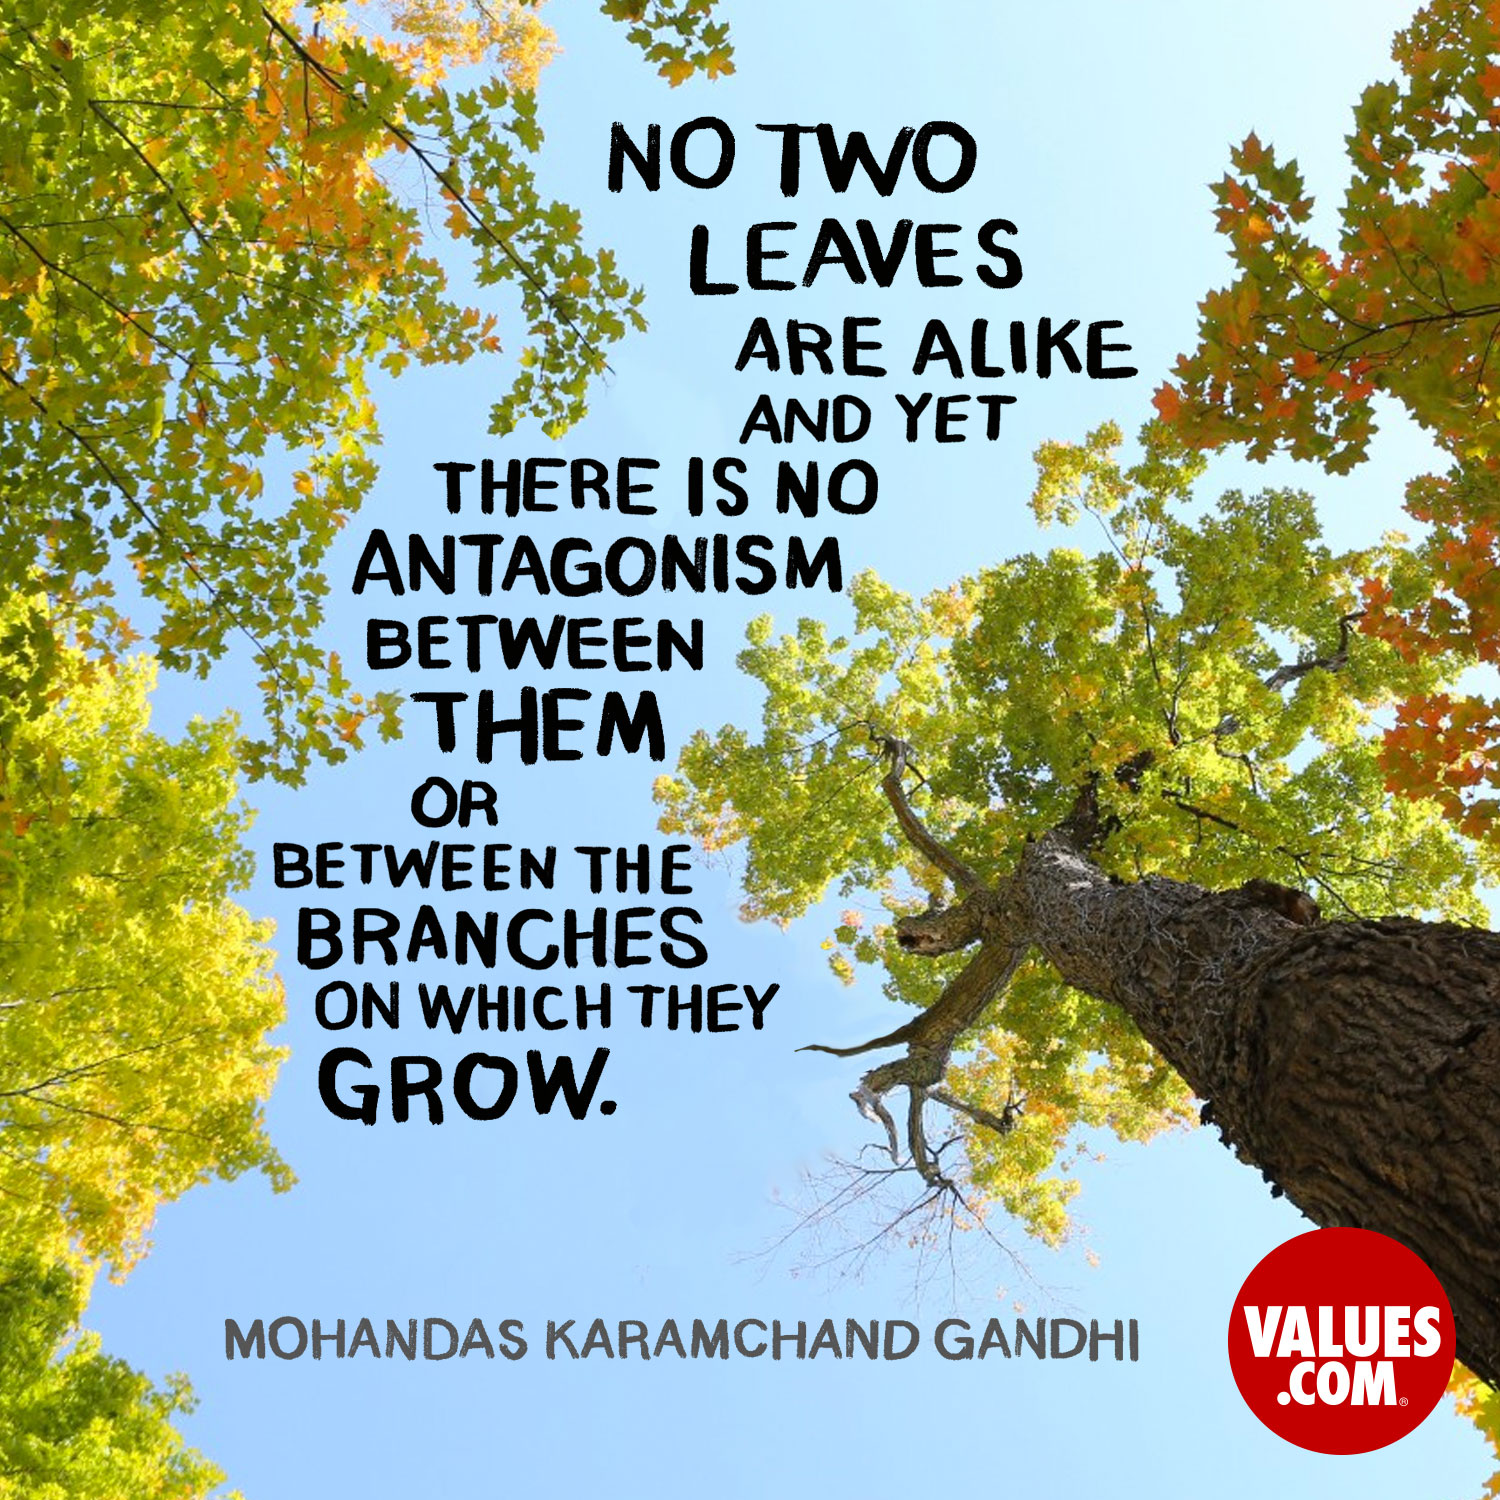 No two leaves are alike, and yet there is no antagonism between them or between the branches on which they grow. —Mohandas Karamchand Gandhi